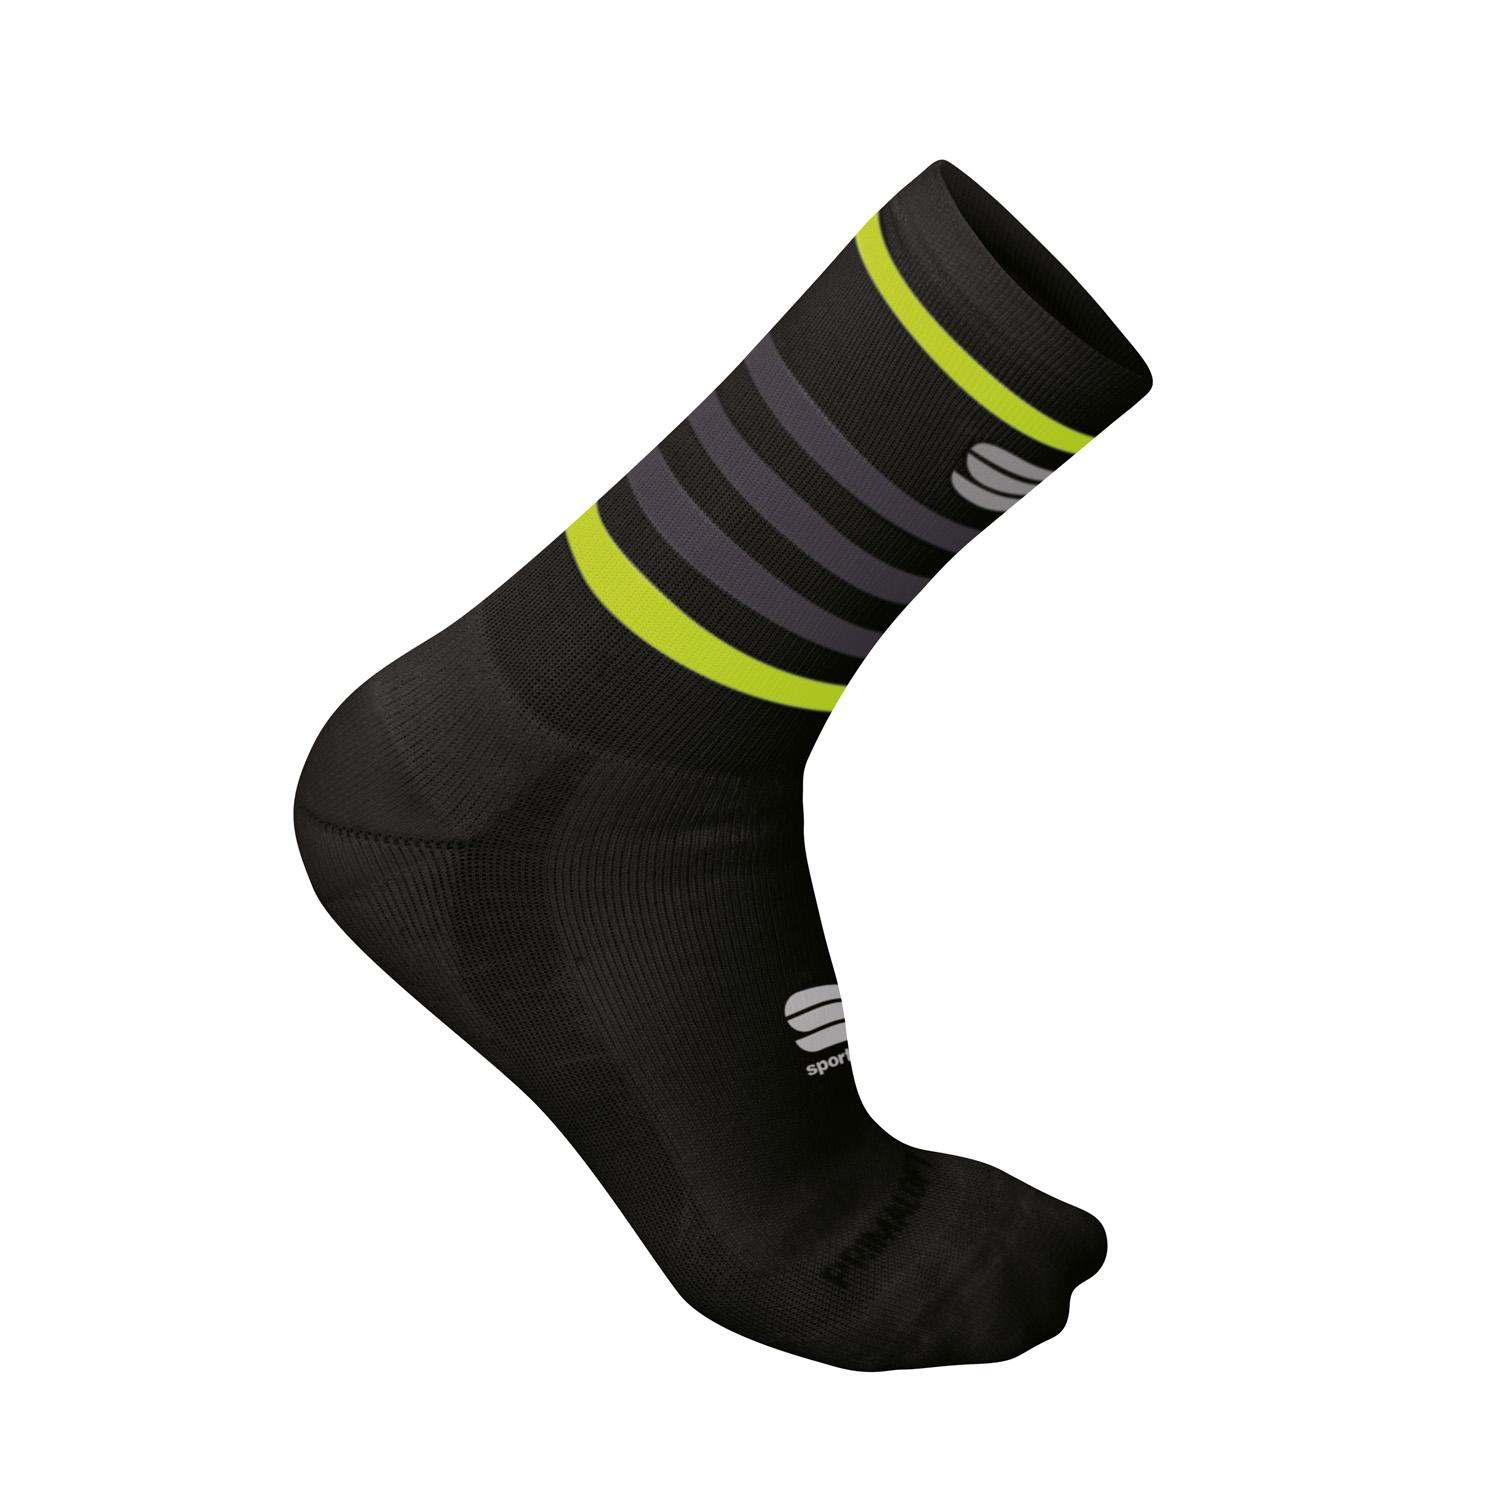 Sportful Fietssokken winter Unisex Zwart - WINTER SOCKS BLACK YELLOW FLUO